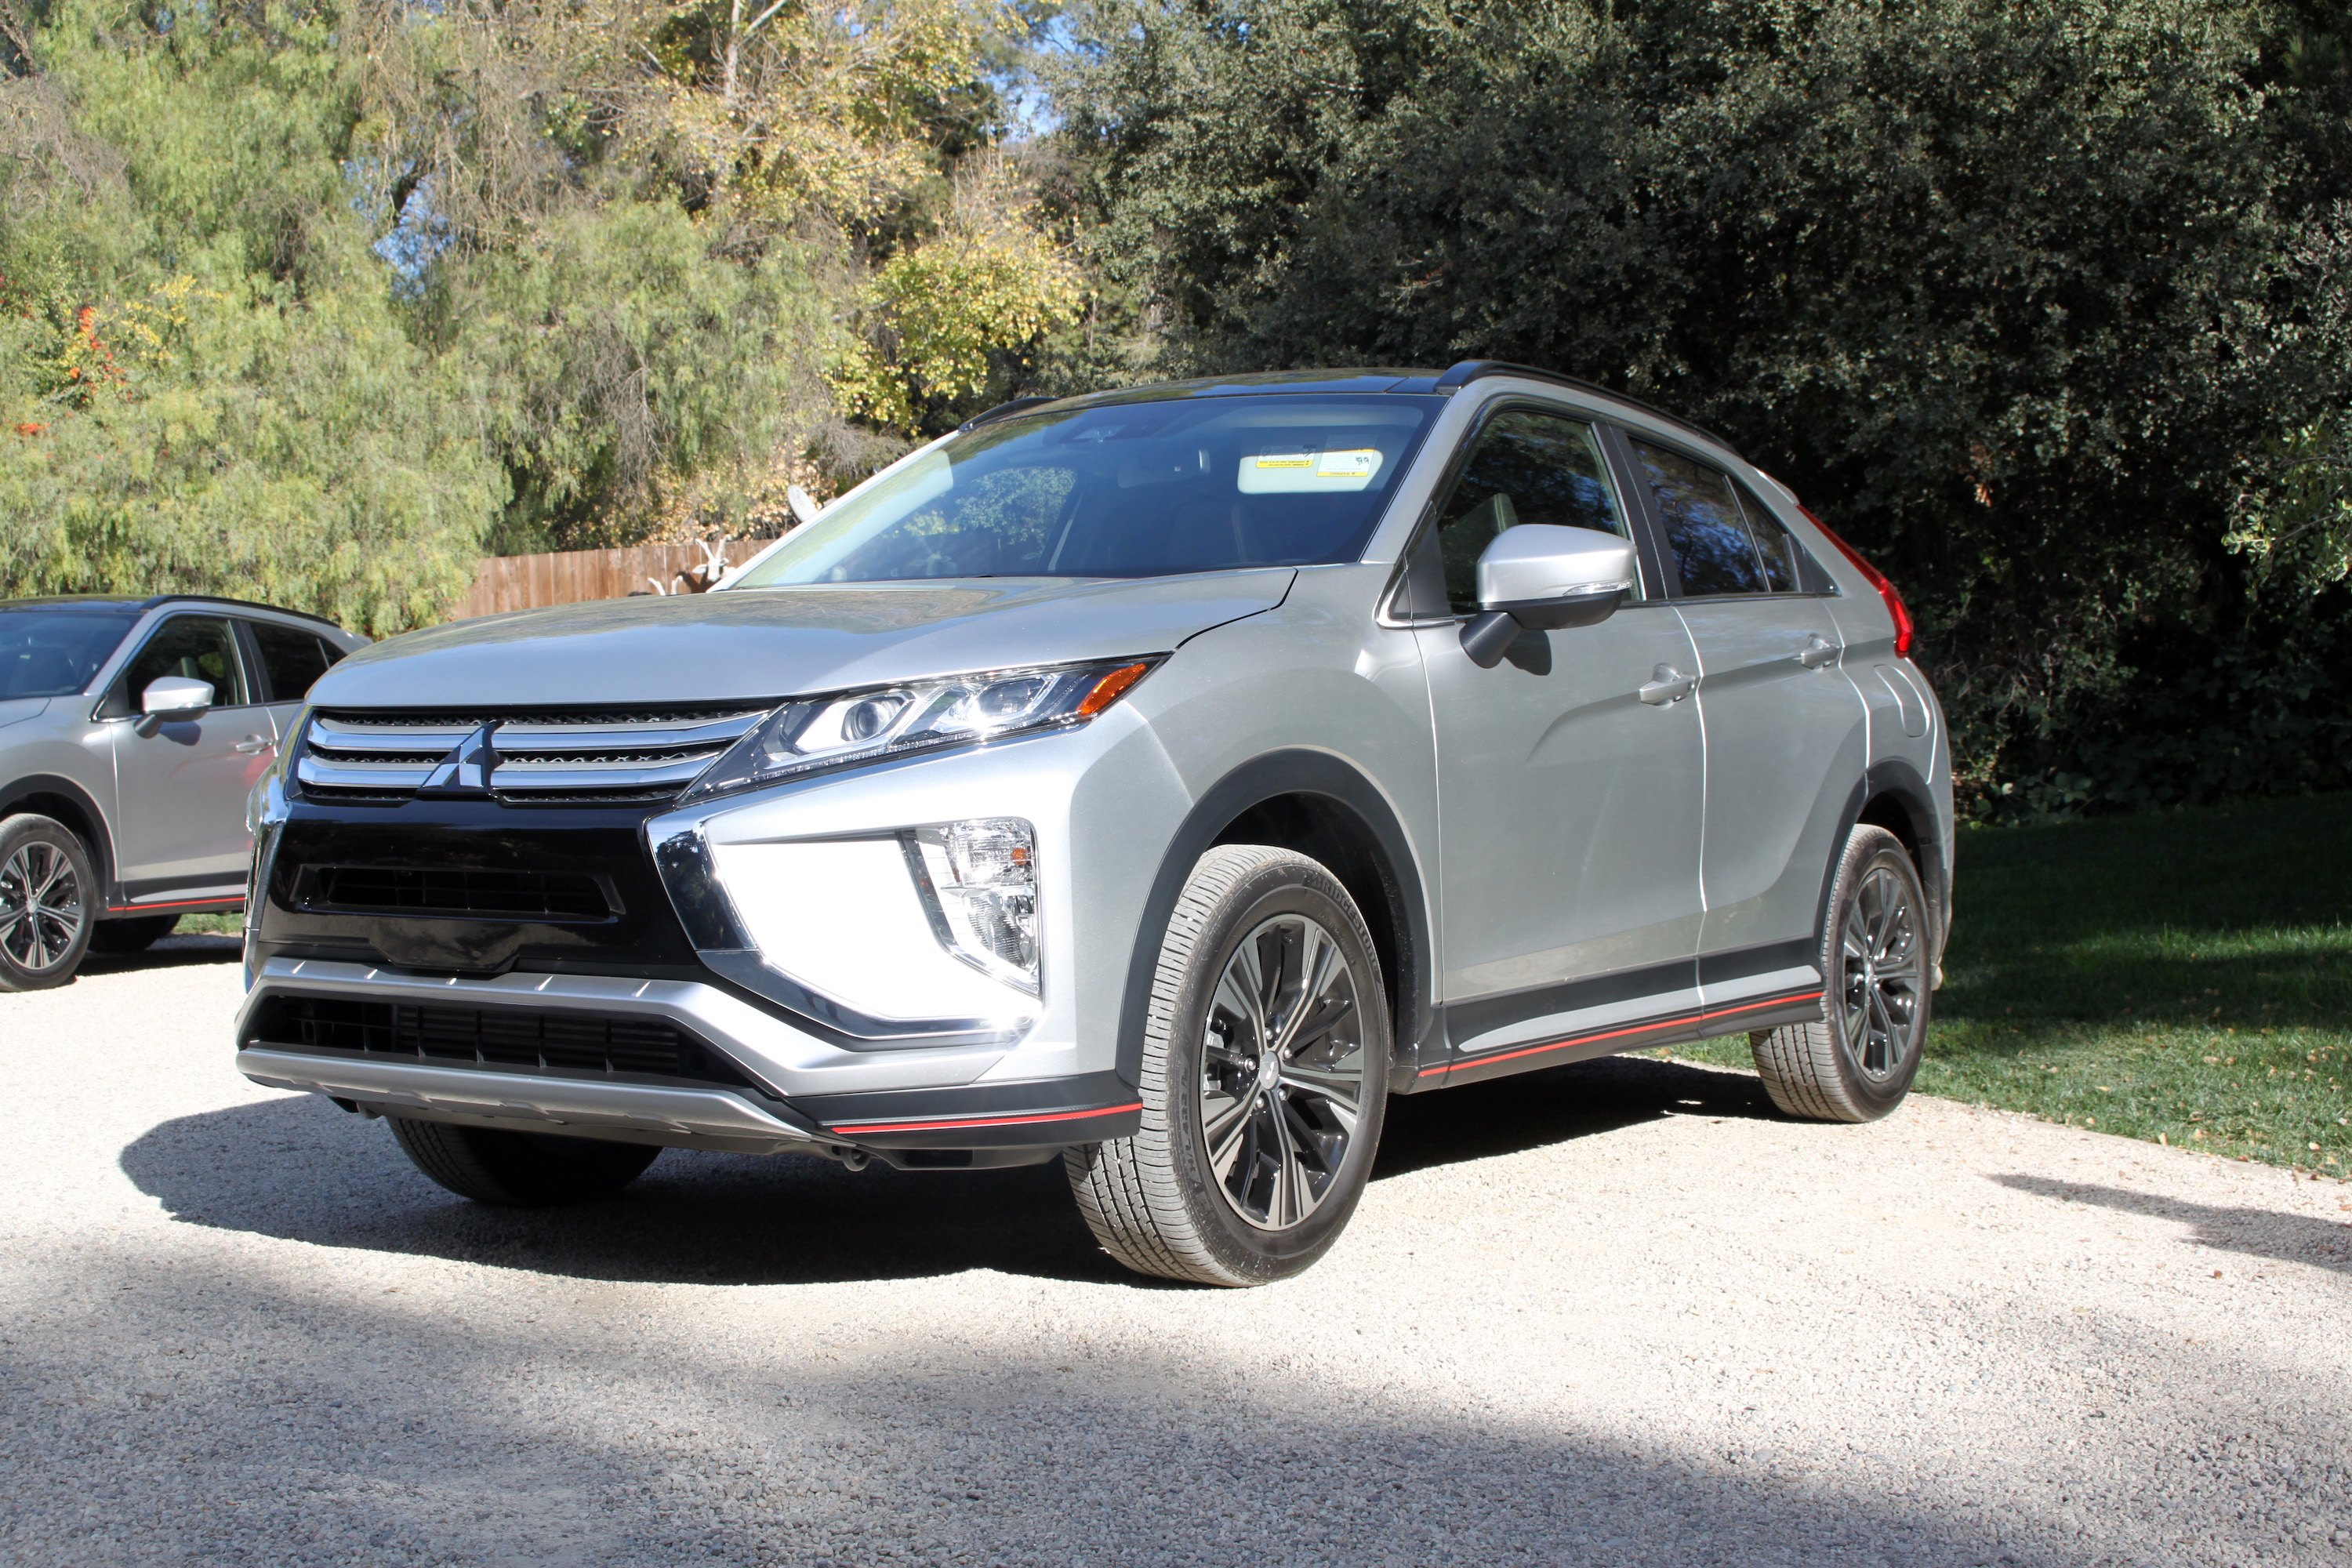 Hand Controls For Cars >> 2018 Mitsubishi Eclipse Cross First Drive and Review - AutoGuide.com